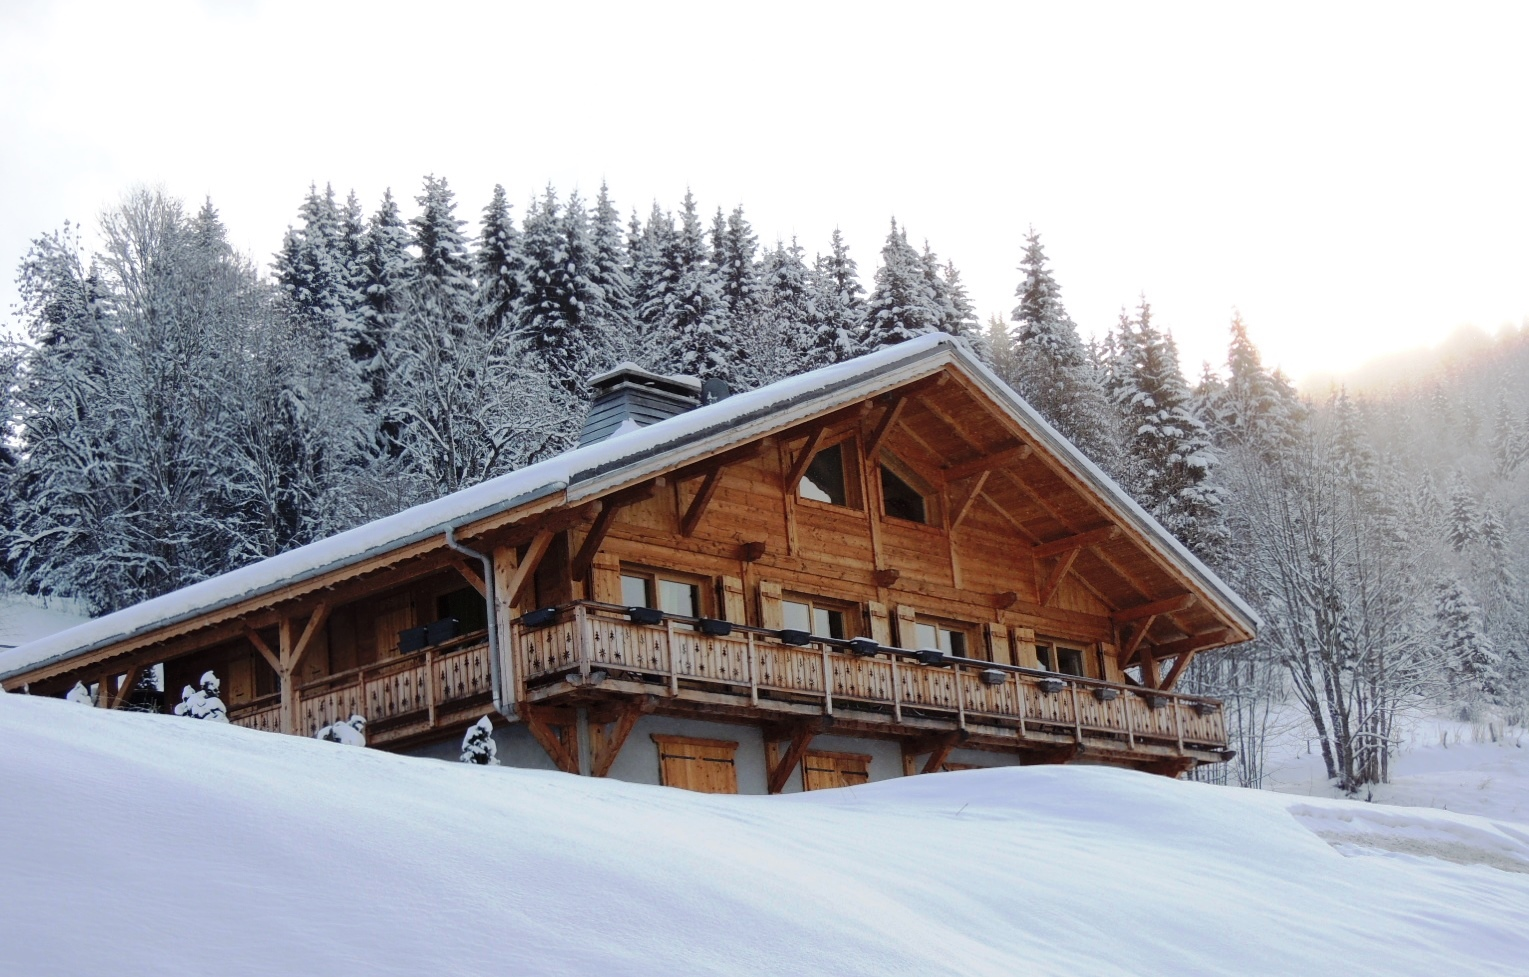 chocolate box ski chalet for sale in Les Gets, Portes du Soleil, French Alps